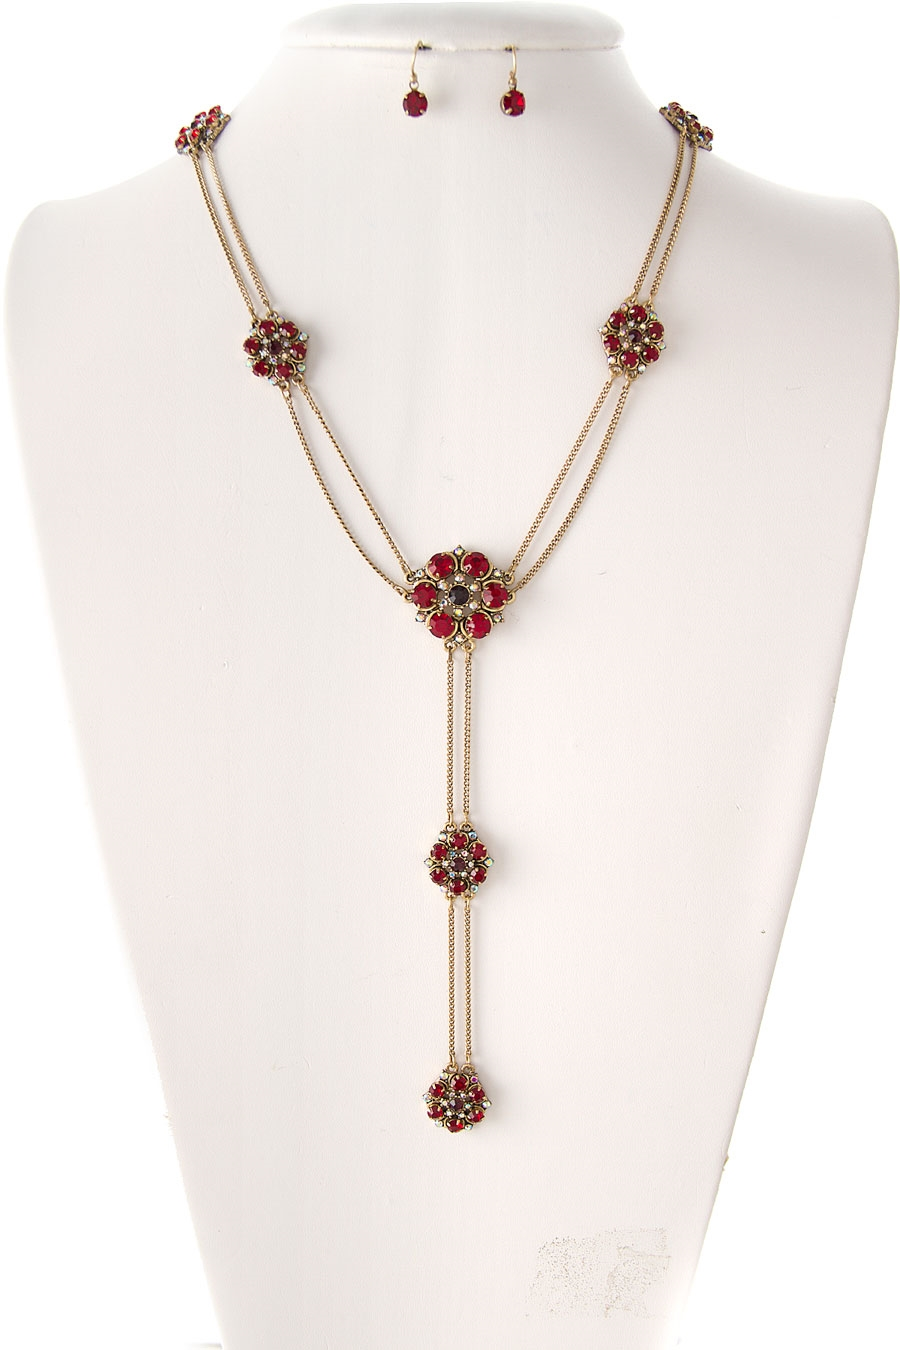 FLOWER STATION NECKLACE SET  - orangeshine.com